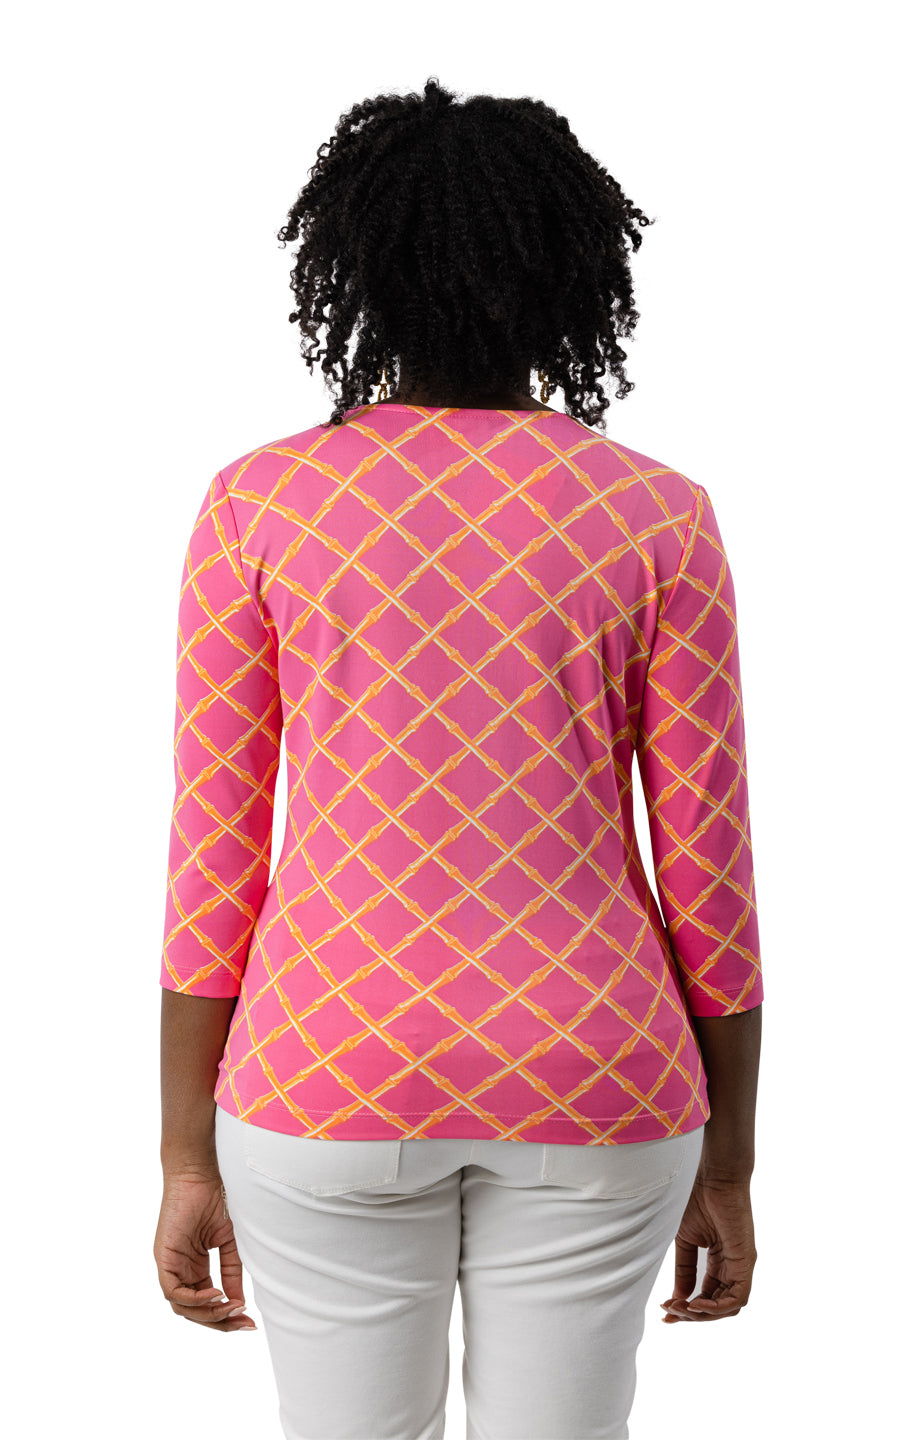 Crew Tee - Pink/Orange Bamboo Lattice